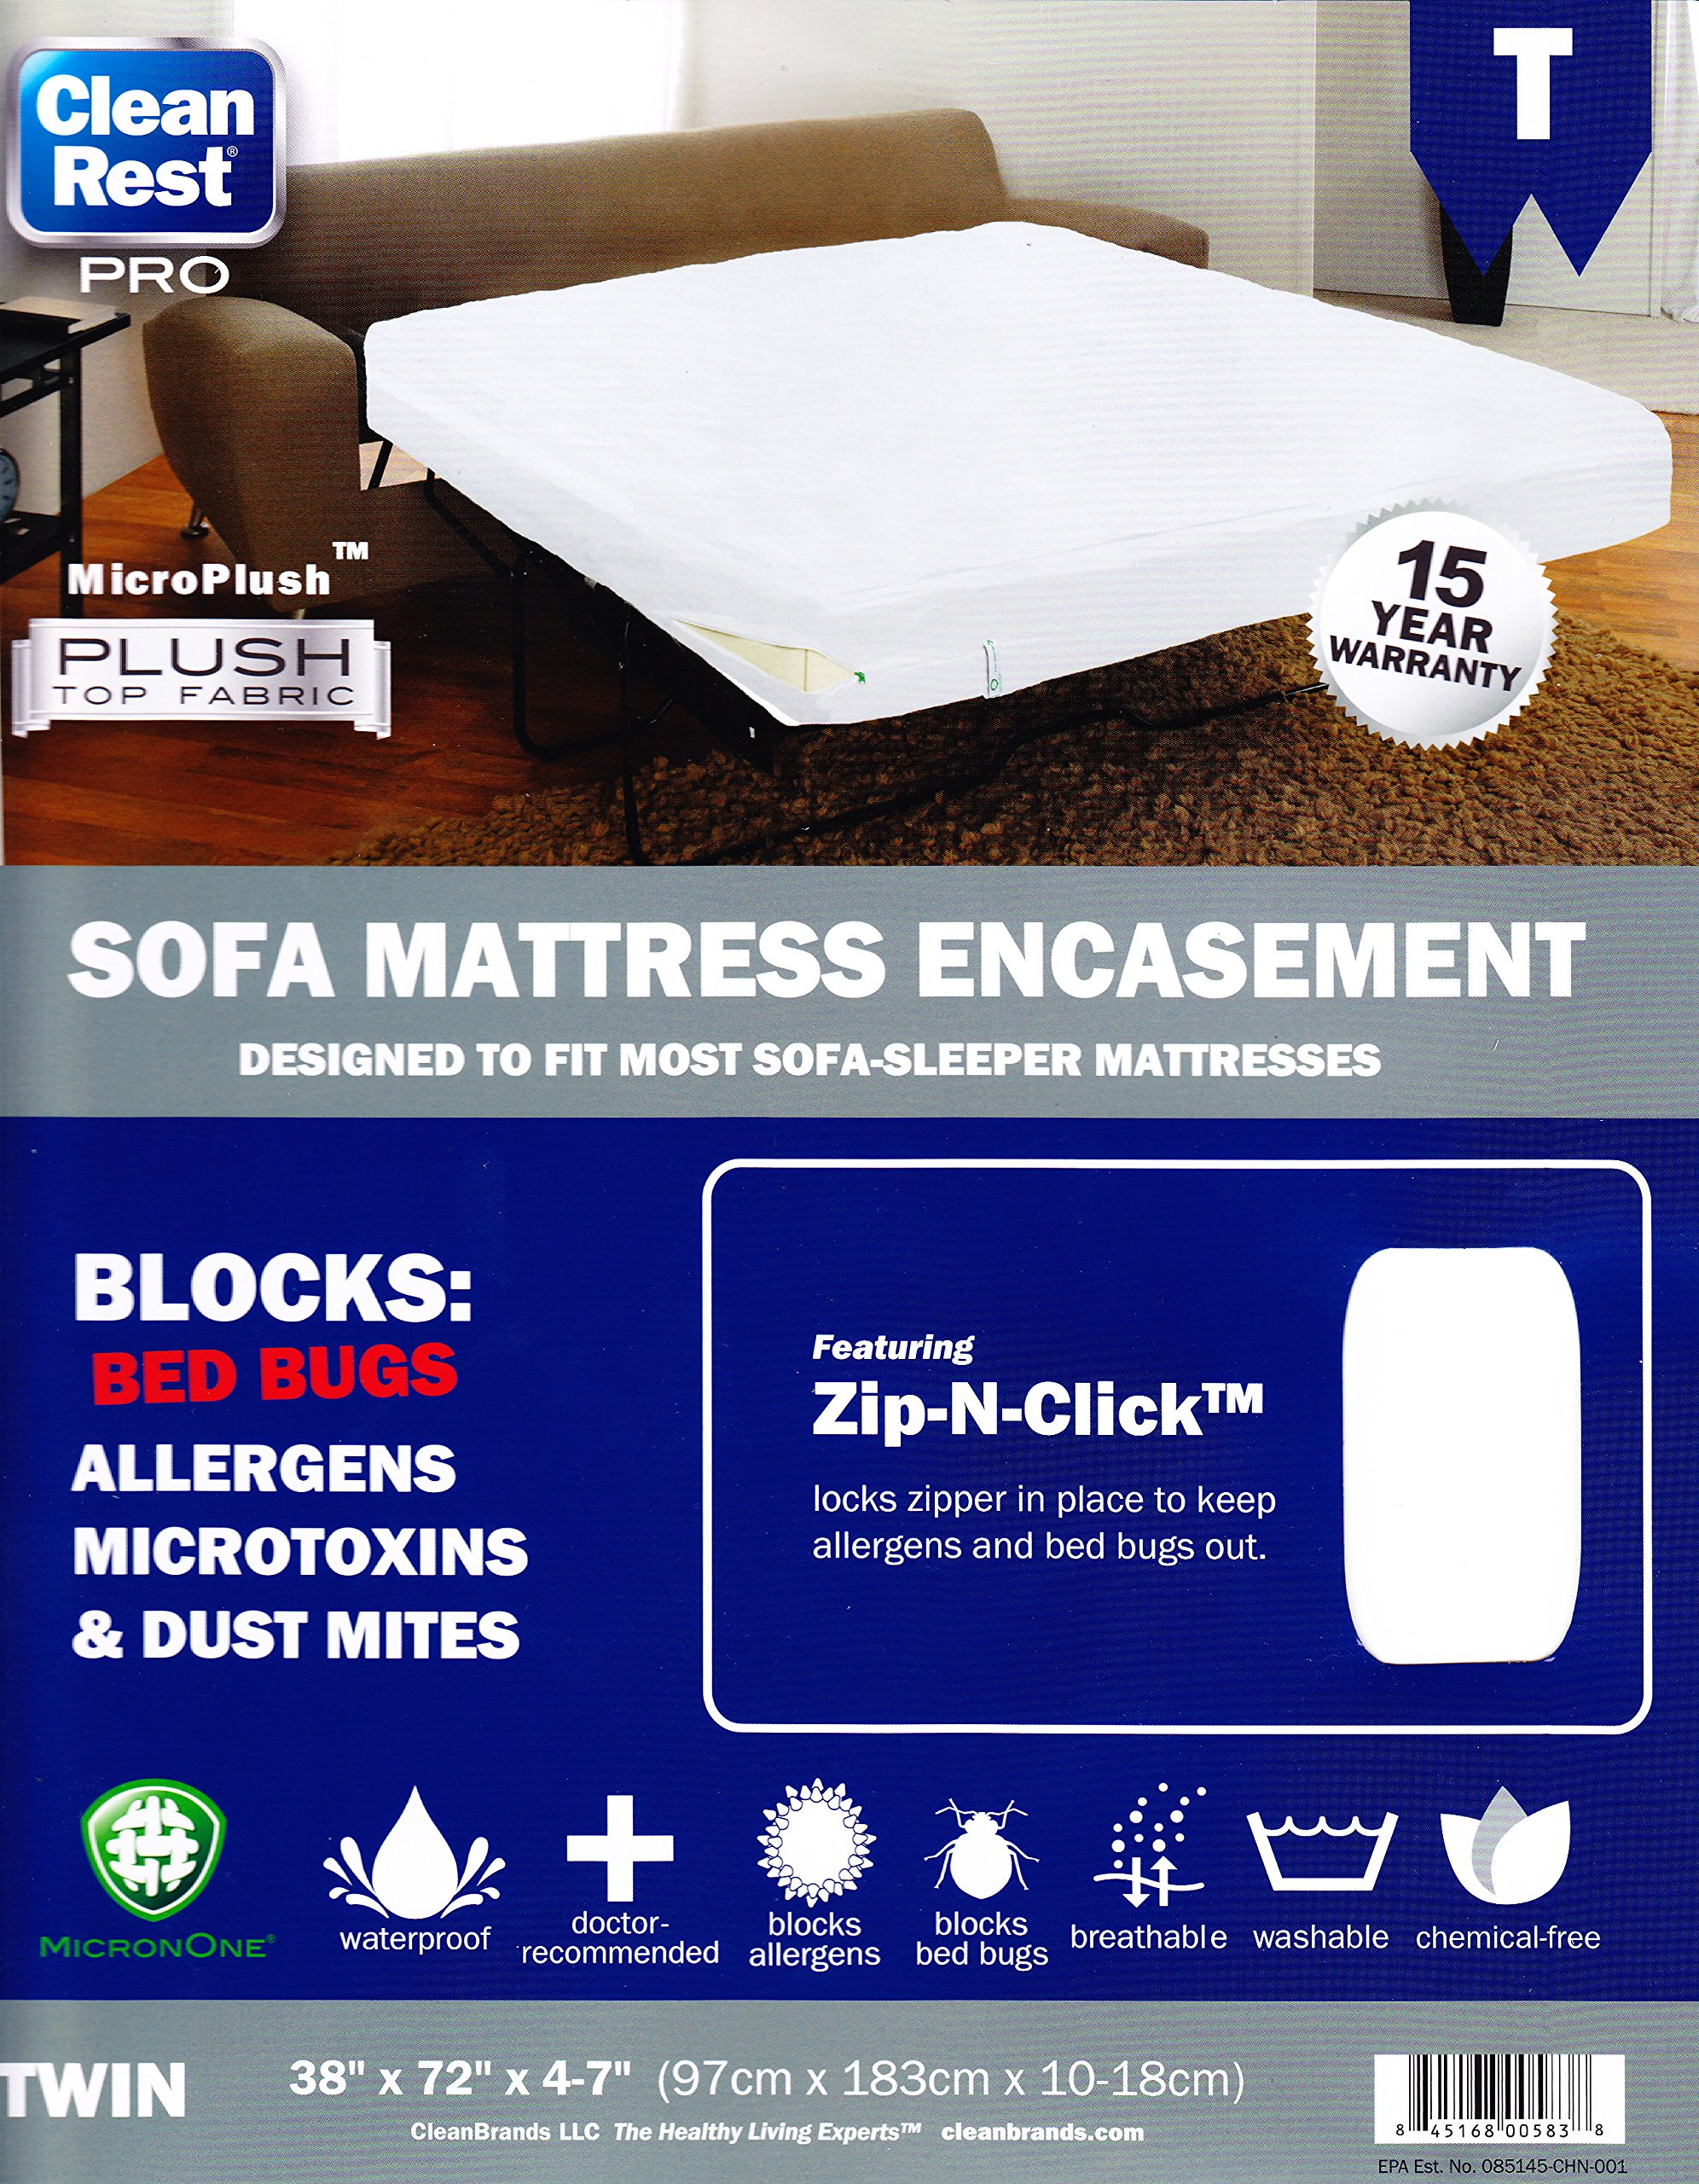 Clean Rest PRO SOFA Mattress Encasement Bed Bug, Allergen & Dust Mite Proof (Twin)